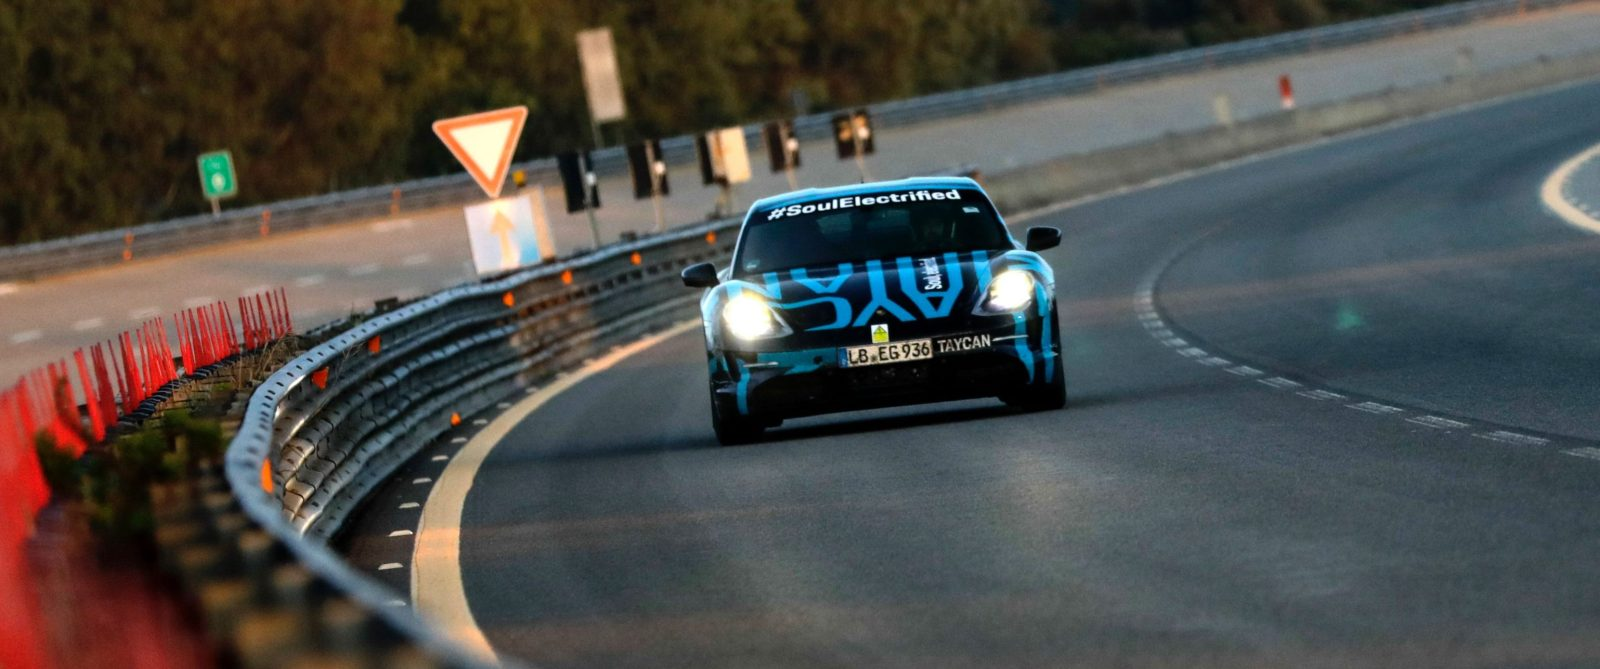 Porsche drives Taycan electric car at high speed for 3,425 km (2,128 miles) in 24 hr endurance test